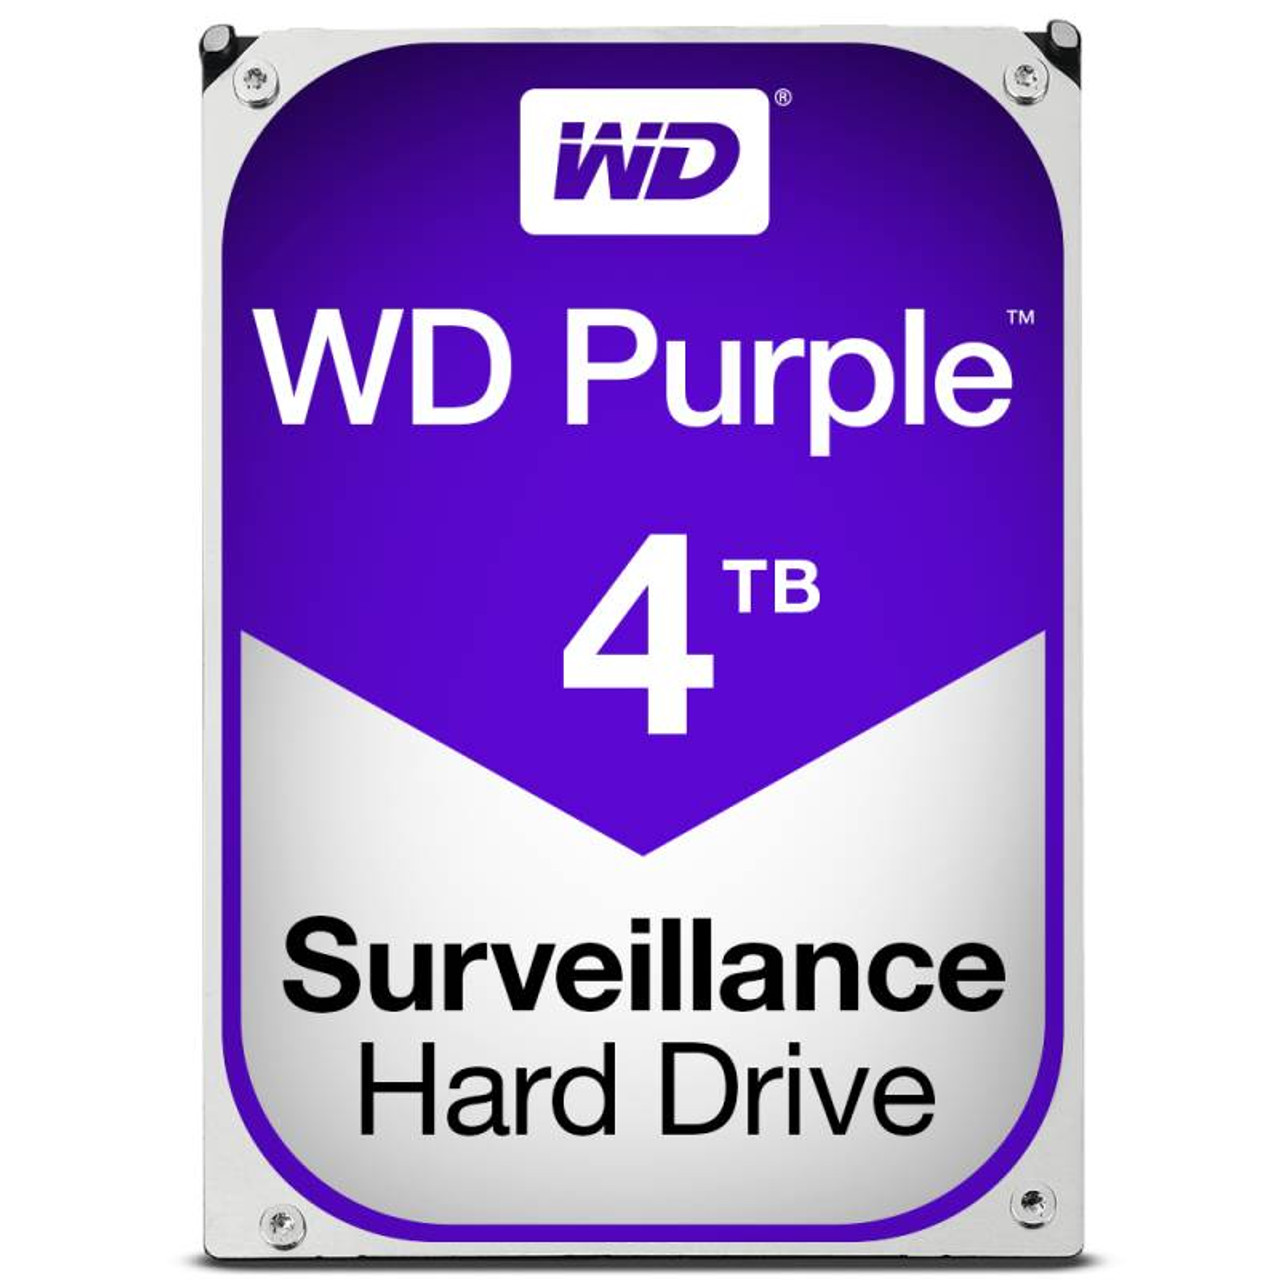 Product image for Western Digital WD Purple 4TB | CX Computer Superstore